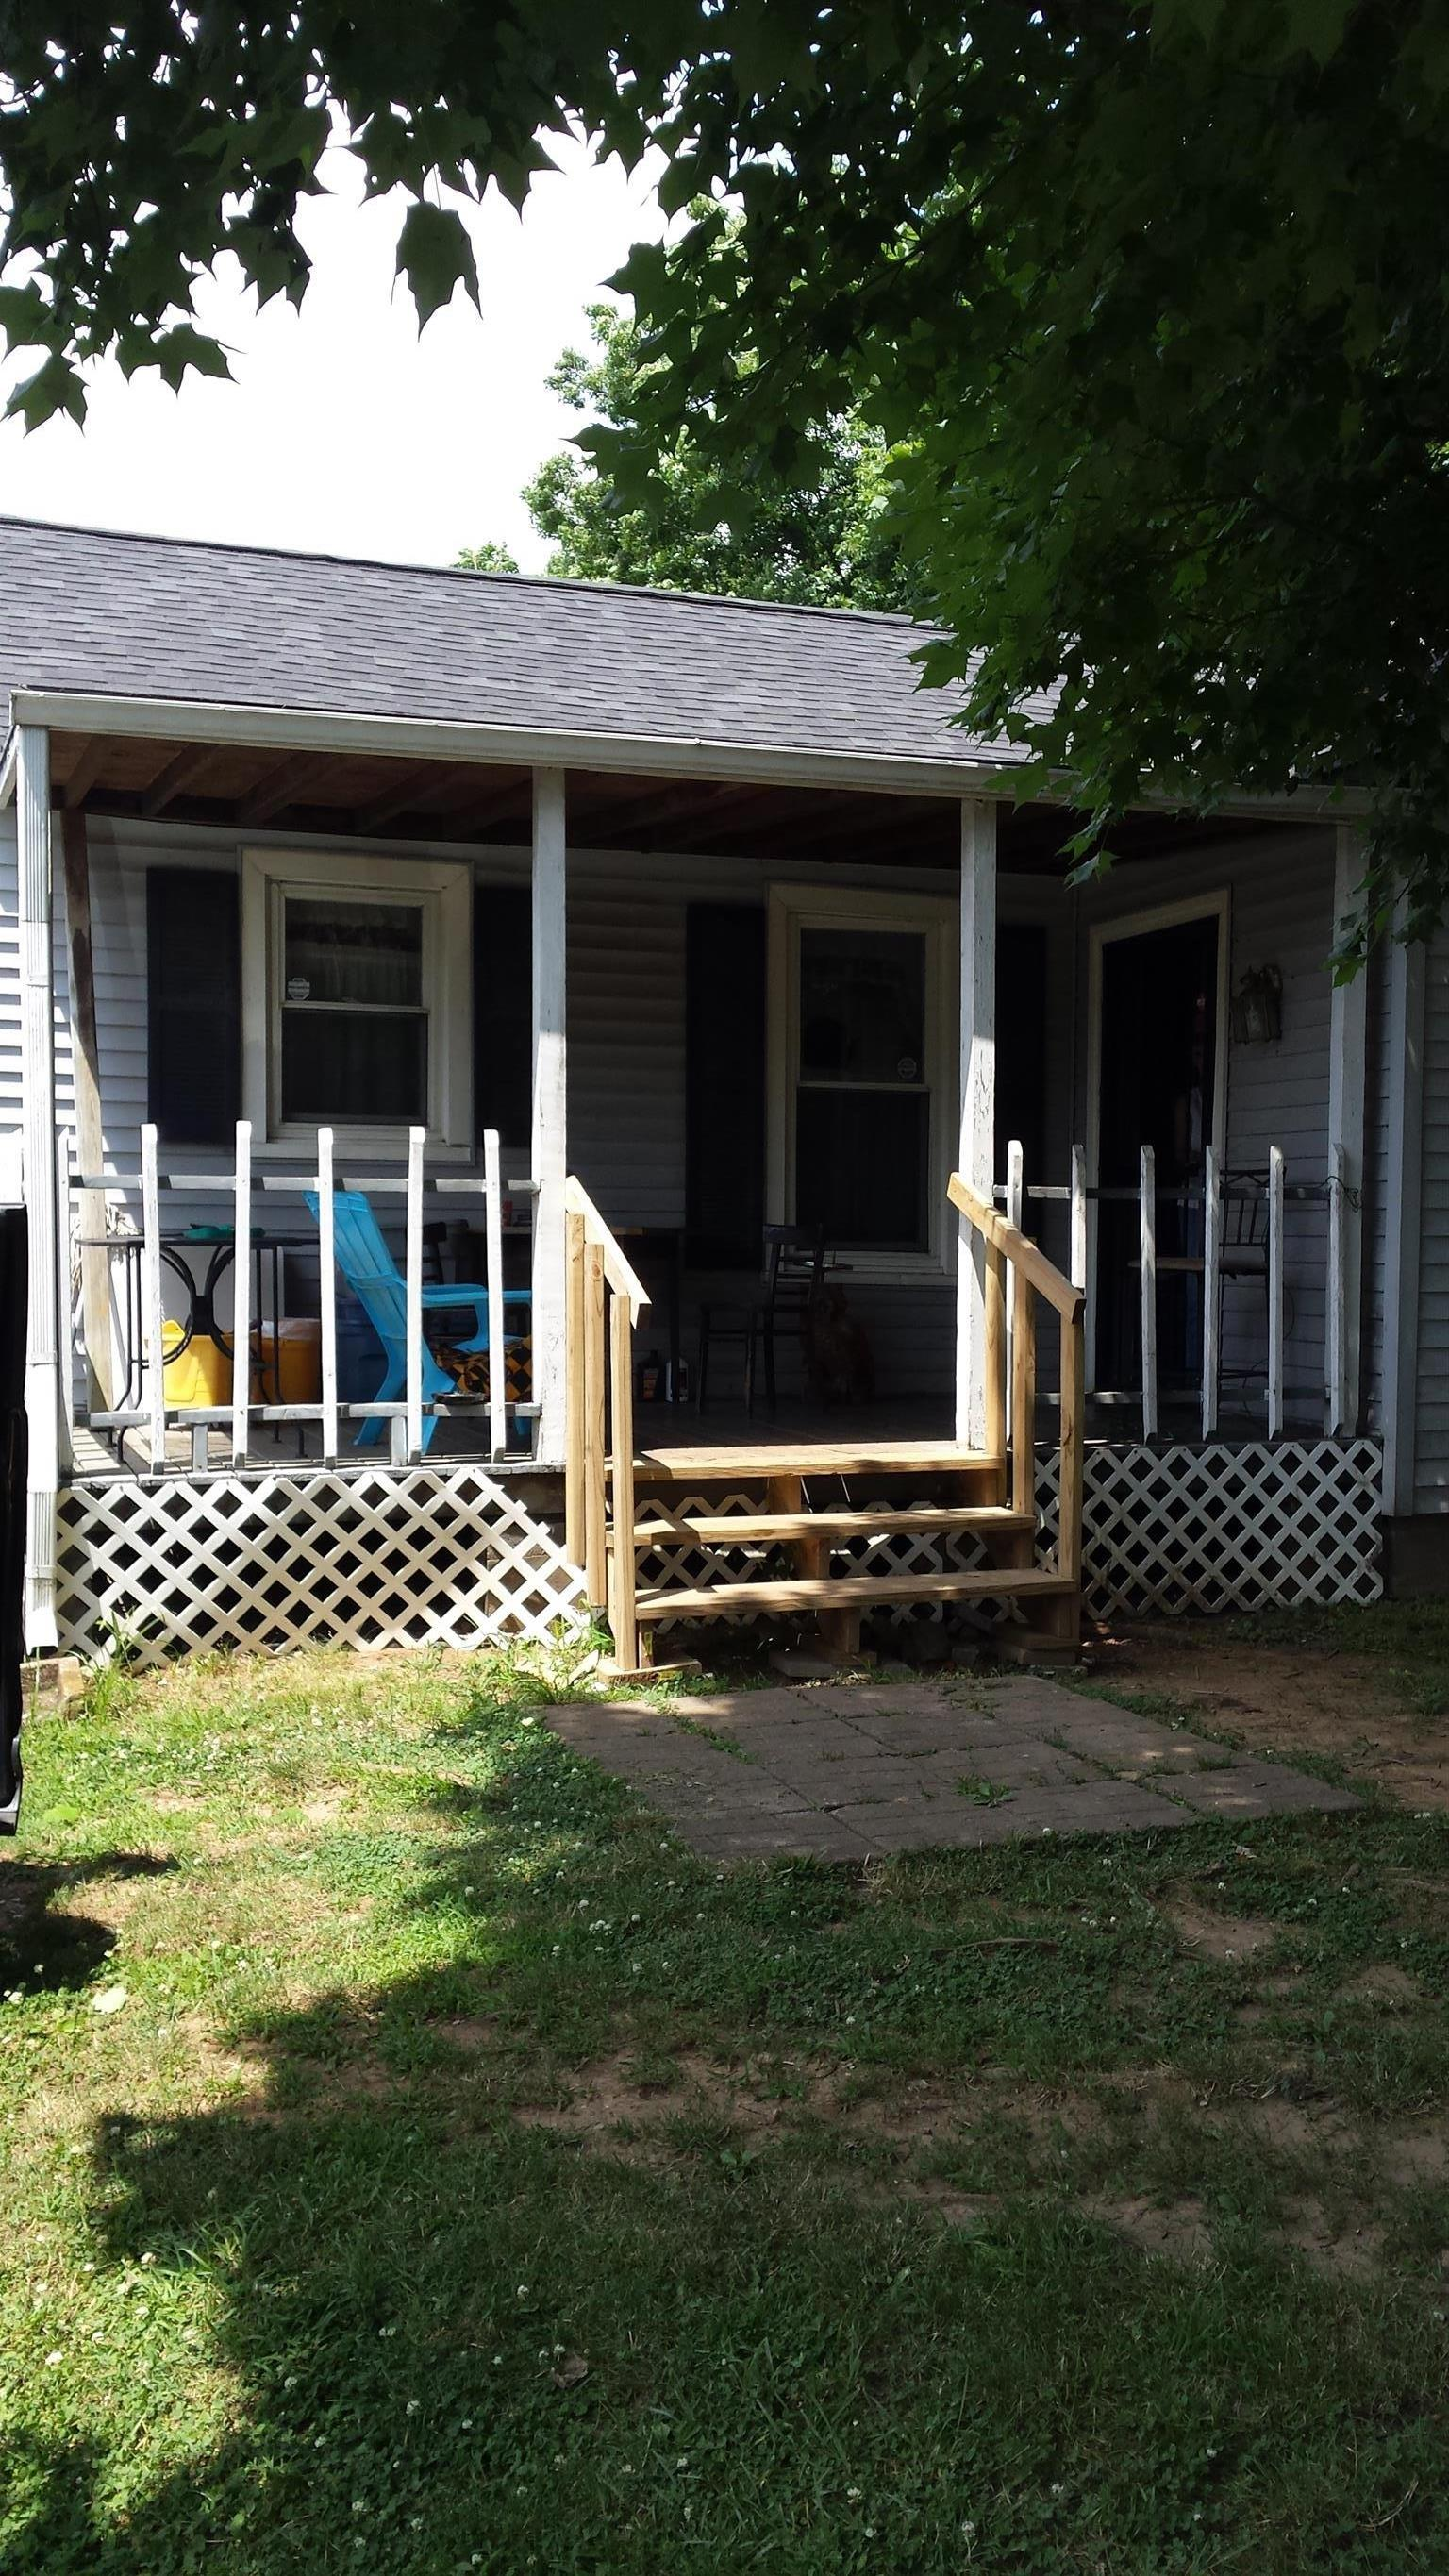 618 Southgate Ave, Nashville - Midtown in Davidson County County, TN 37203 Home for Sale